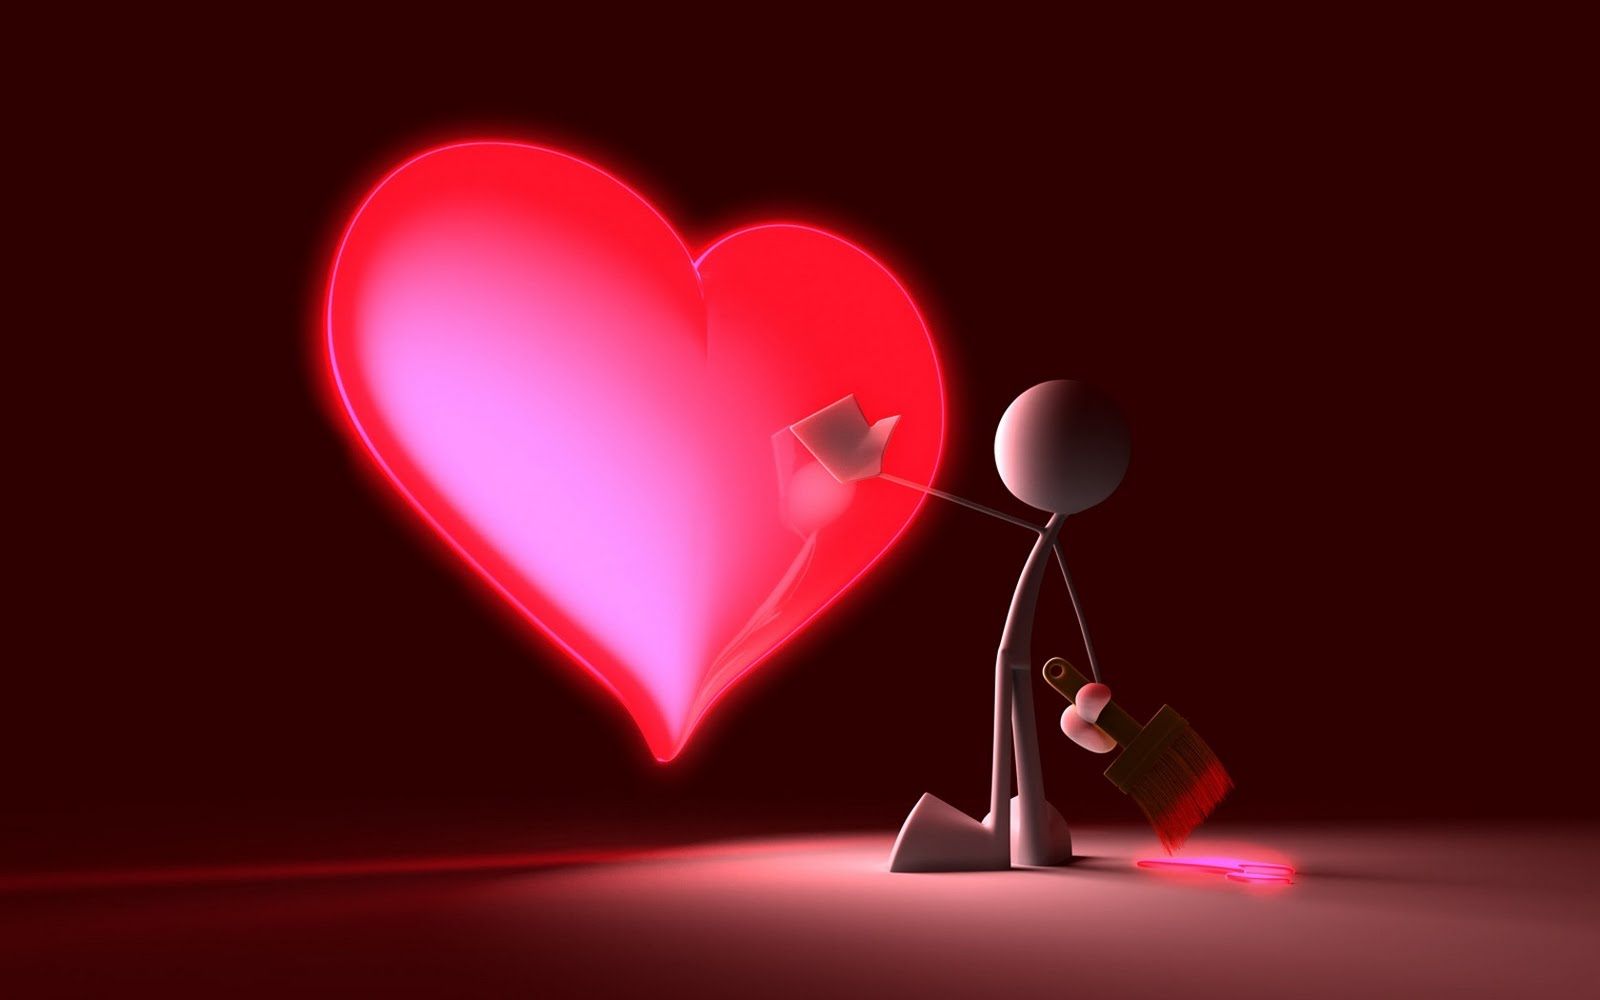 3d Heart Love Wallpapers 4852 Wallpaper: TOP WORLD PIC: Love & Heart 3D Wallpapers